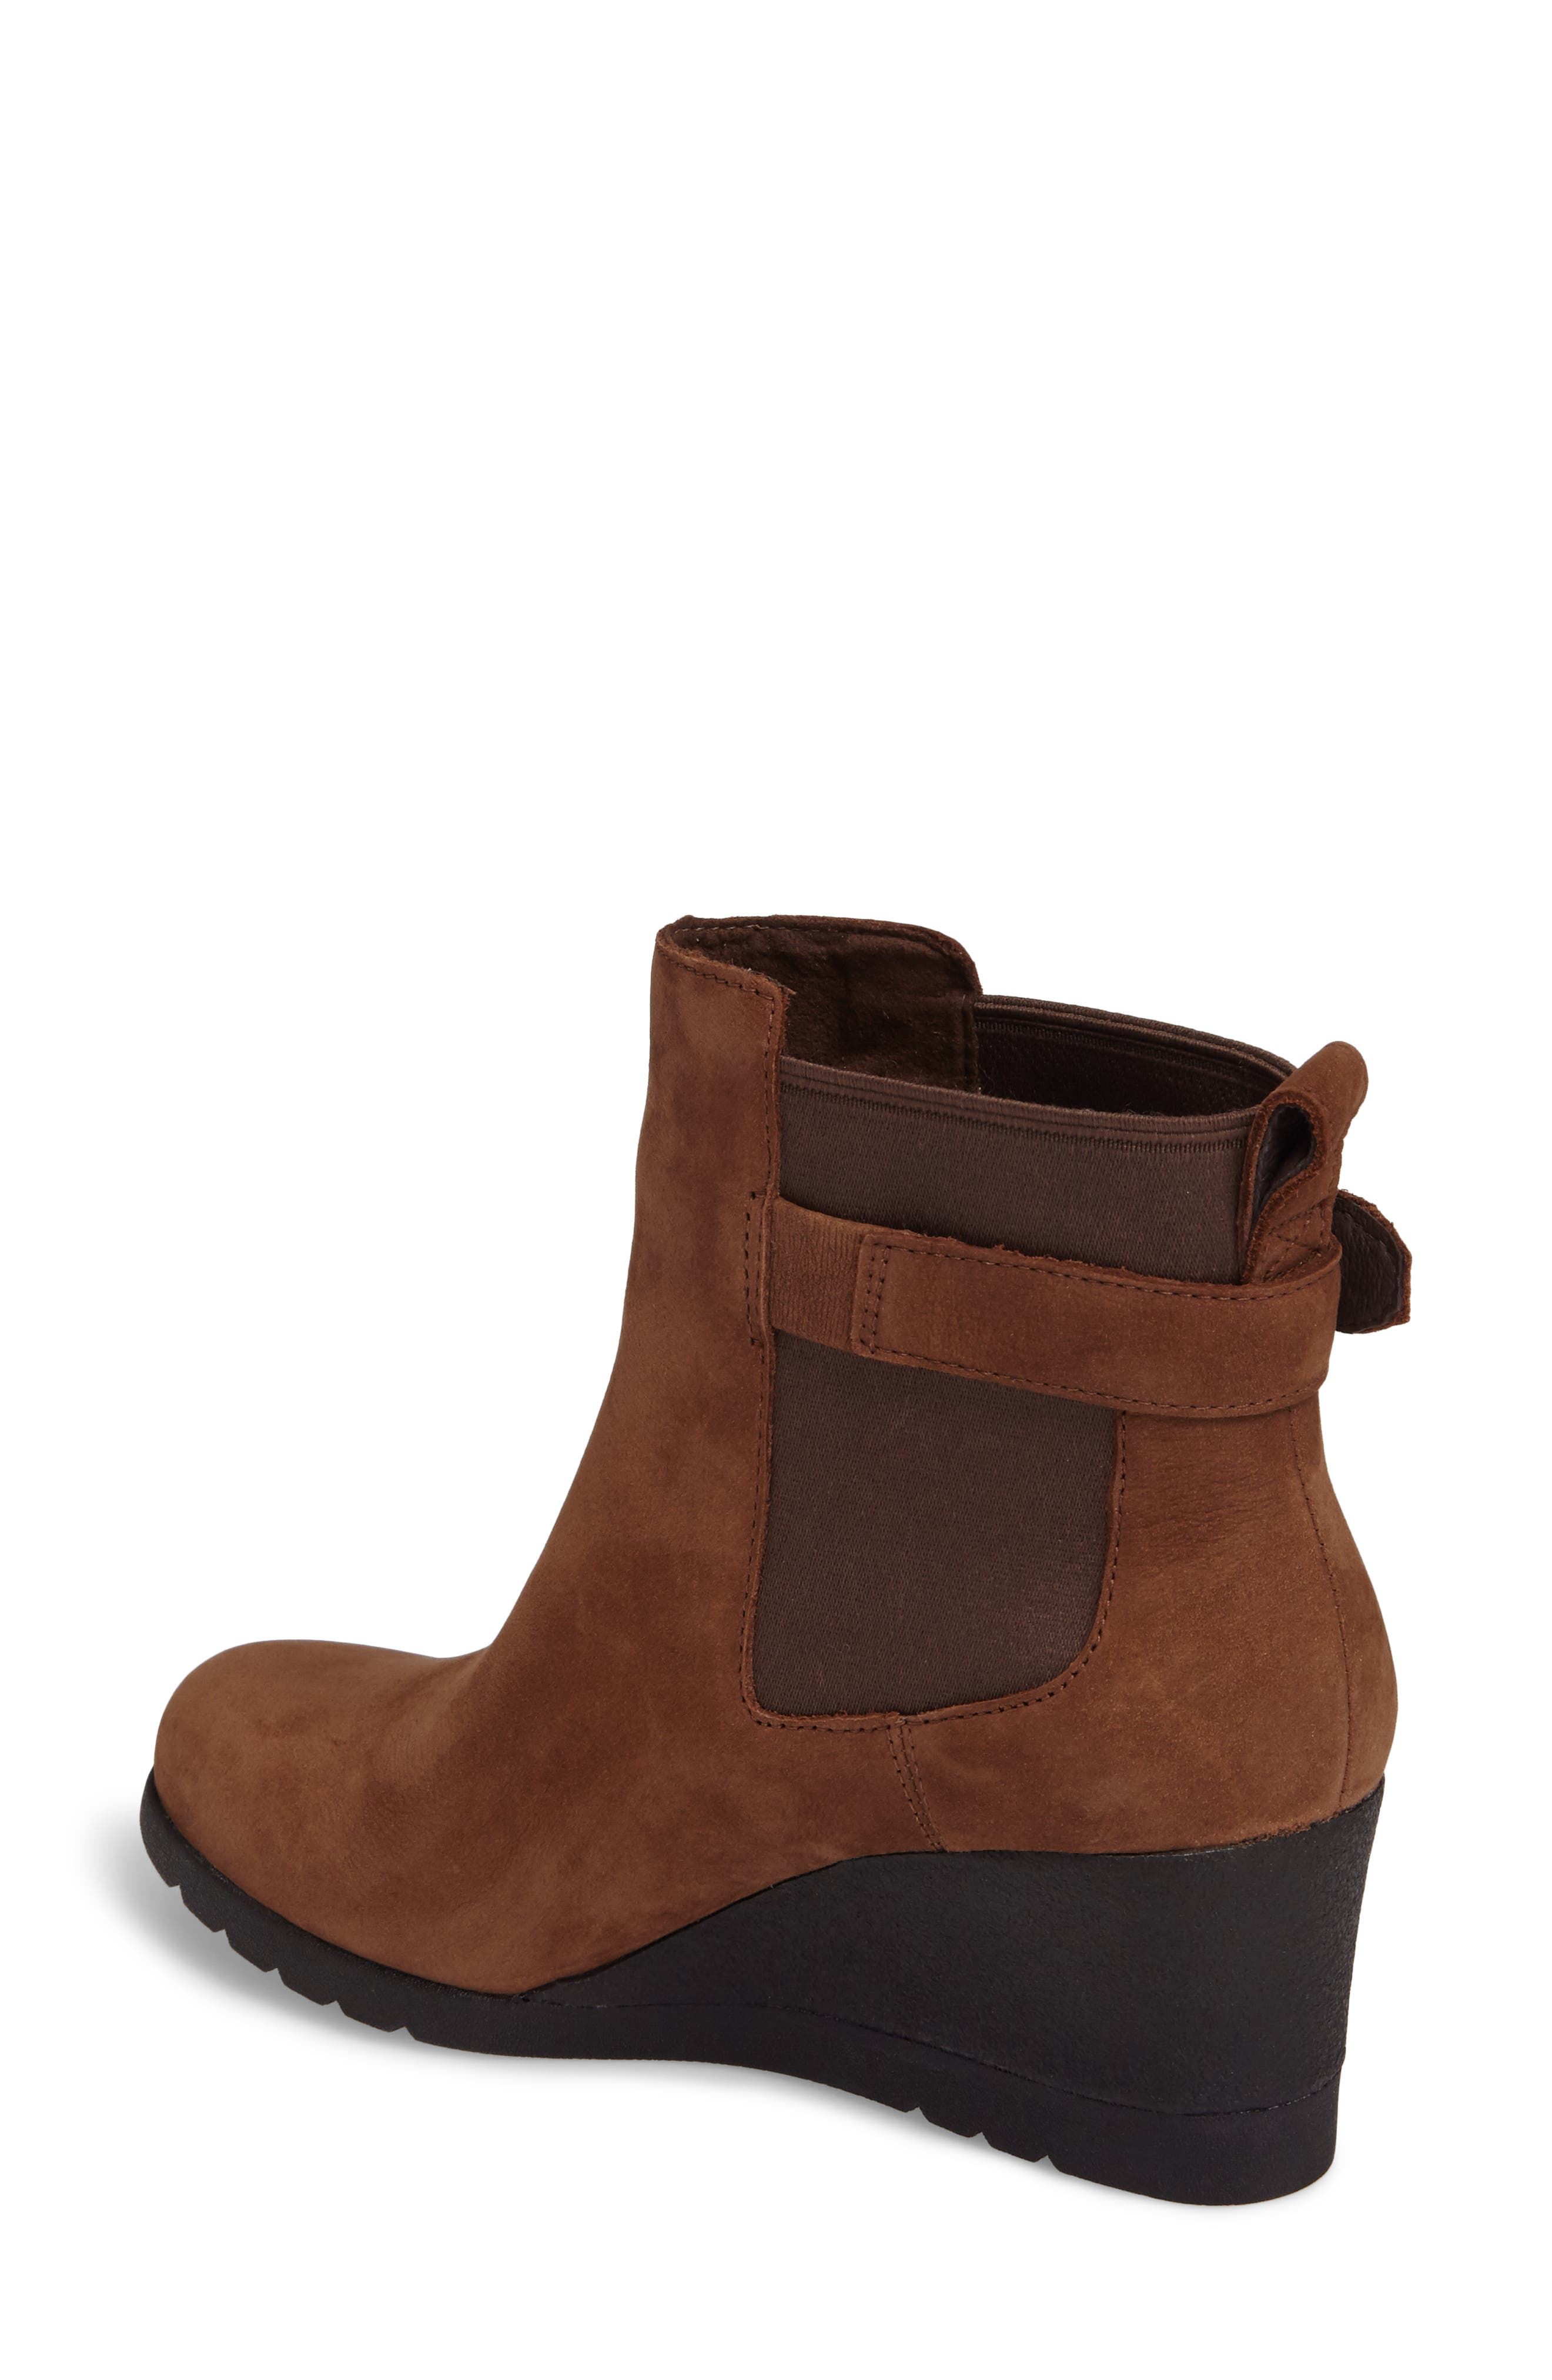 Waterproof Insulated Wedge Boot,                             Alternate thumbnail 2, color,                             STOUT LEATHER